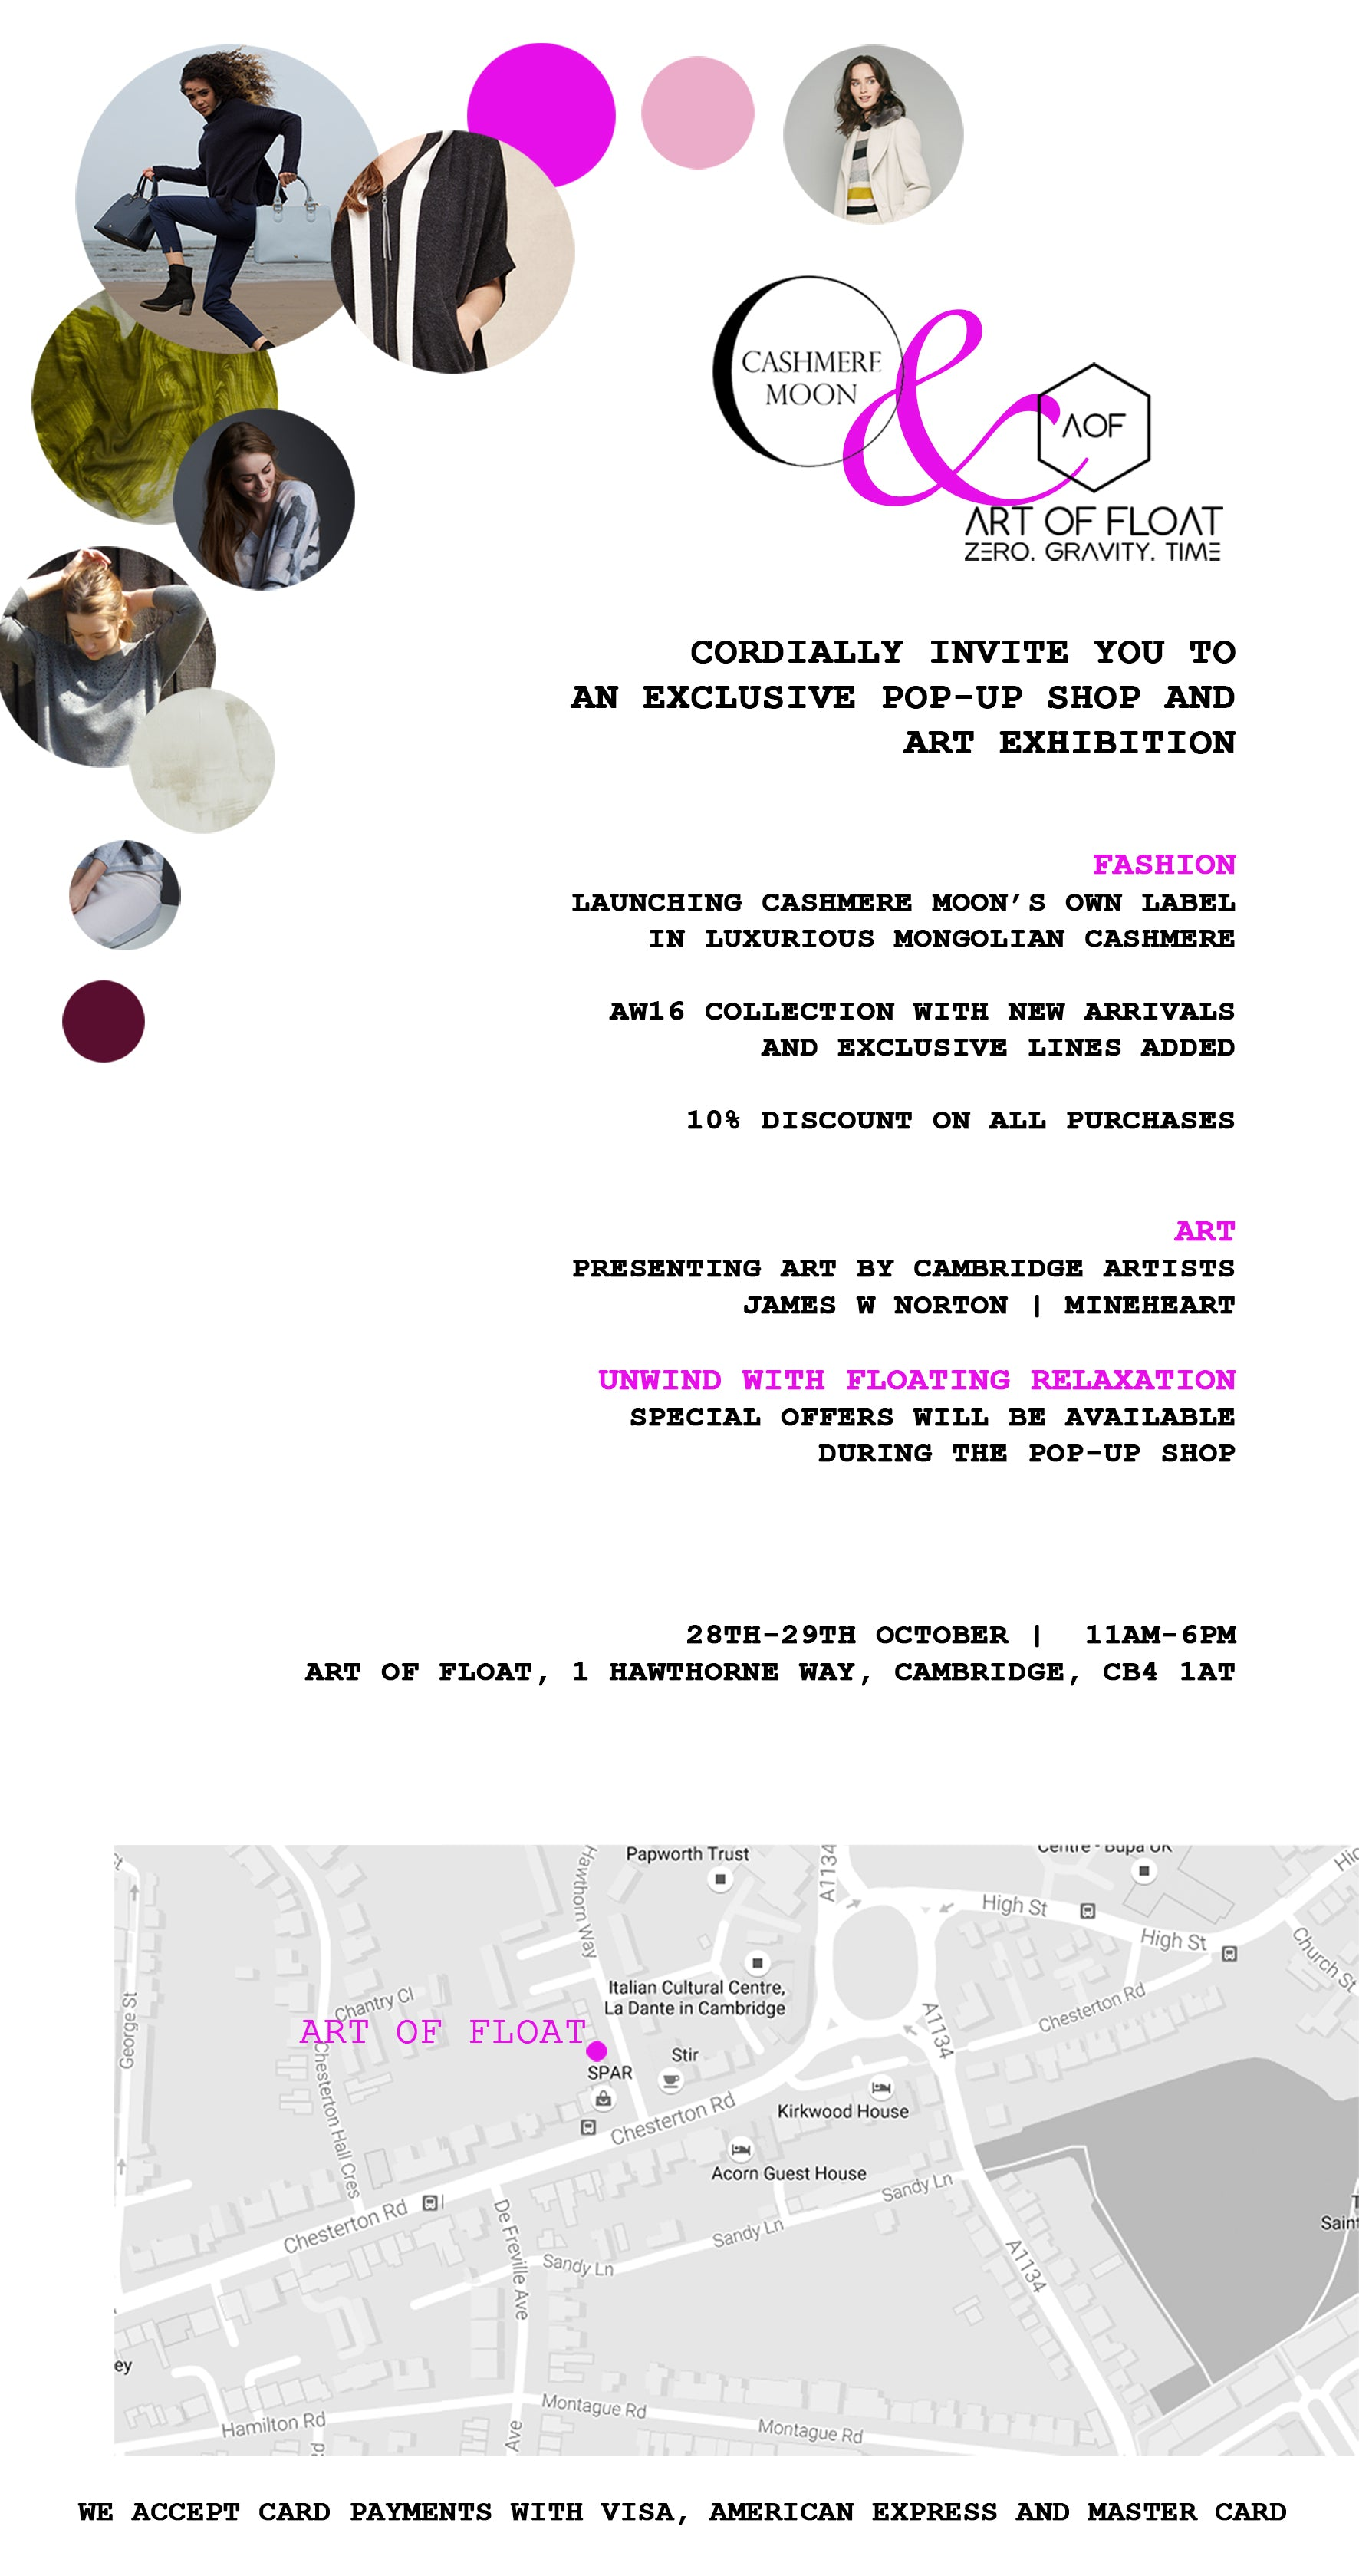 WE CORDIALLY INVITE YOU TO OUR EXCLUSIVE WINTER POPUP SHOP